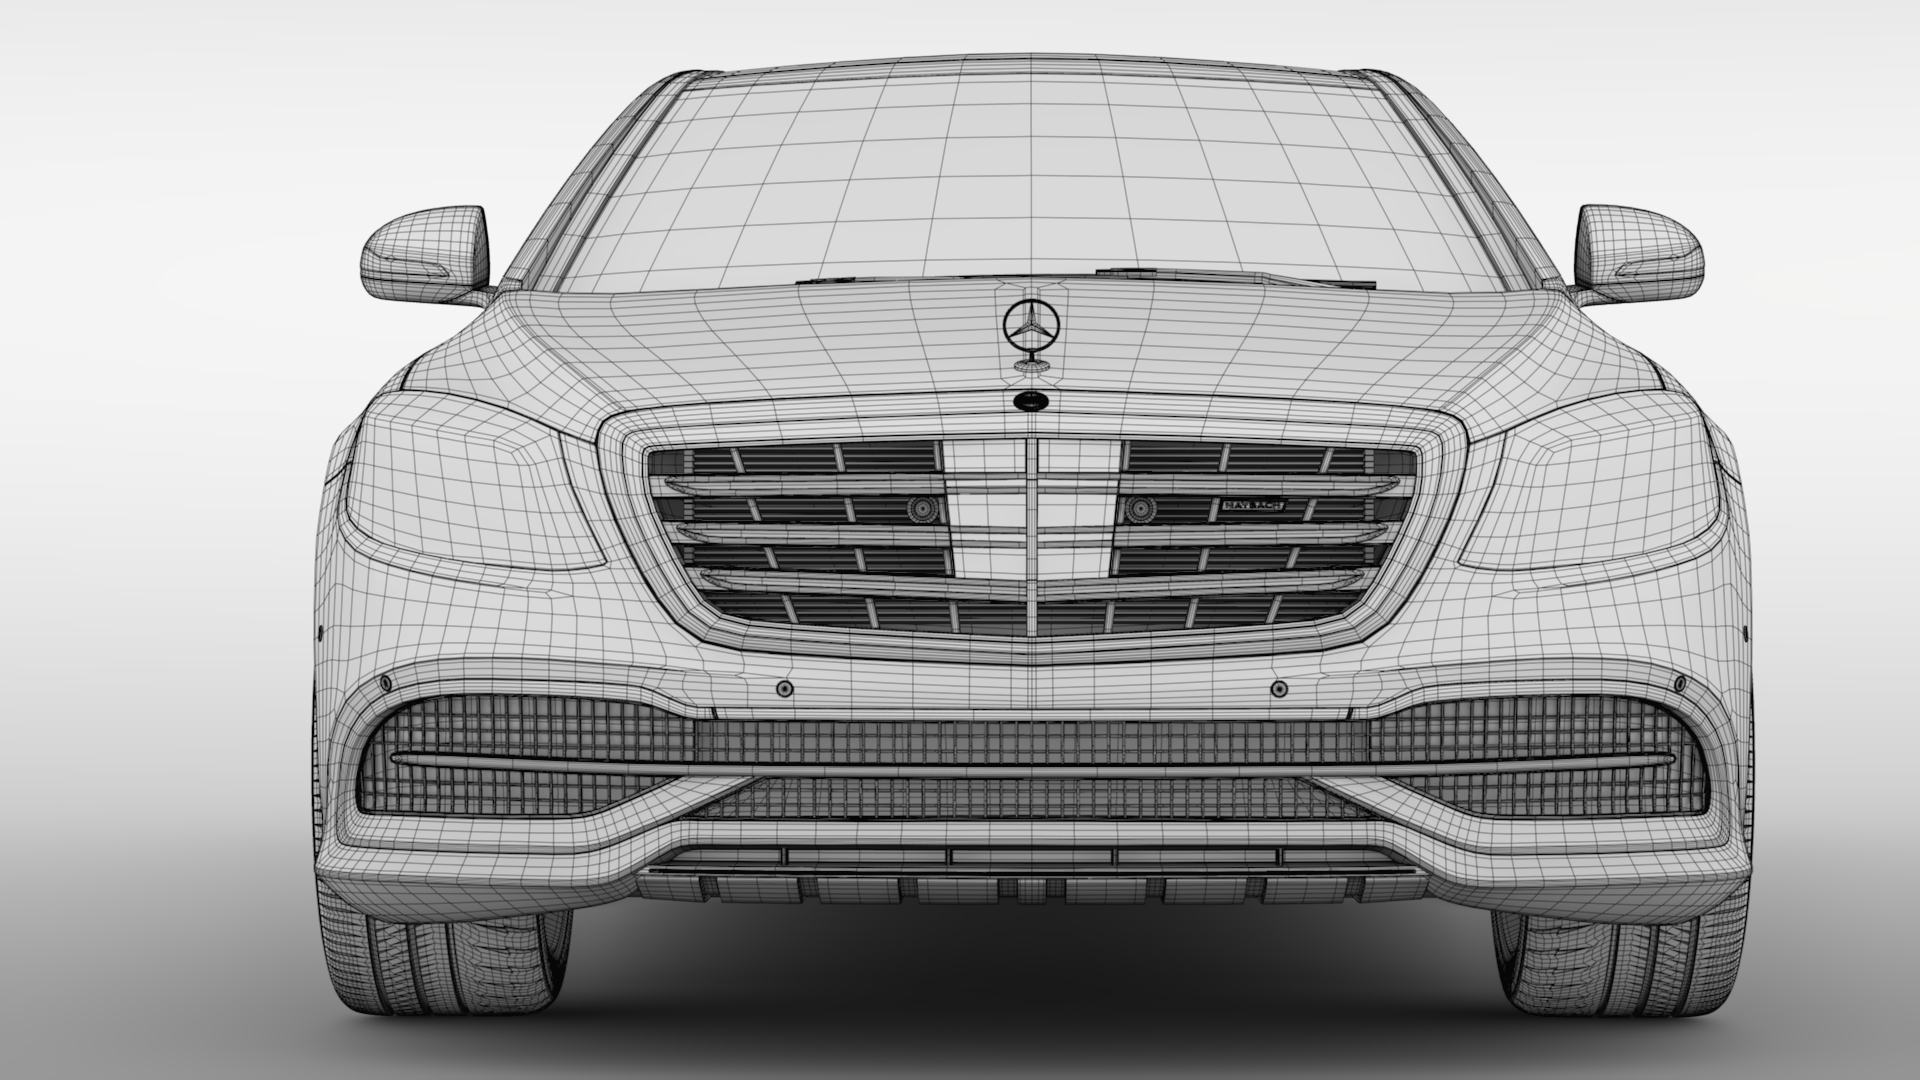 mercedes maybach s 650 x222 2018 3d model 3ds max fbx c4d lwo ma mb hrc xsi obj 284548